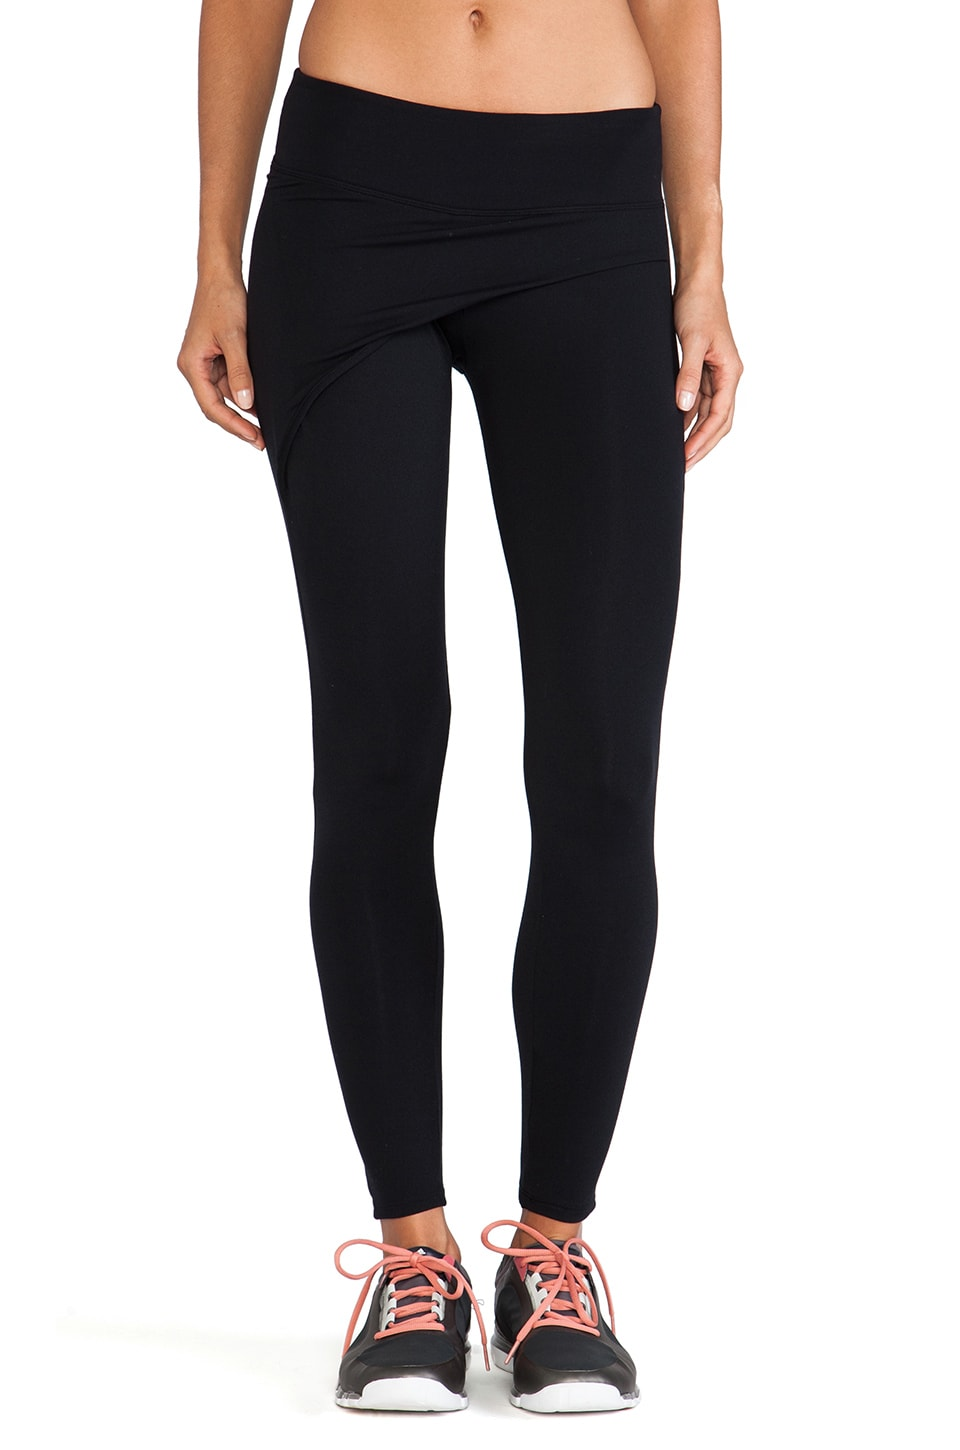 SOLOW So Low Wrap Front Legging in Black